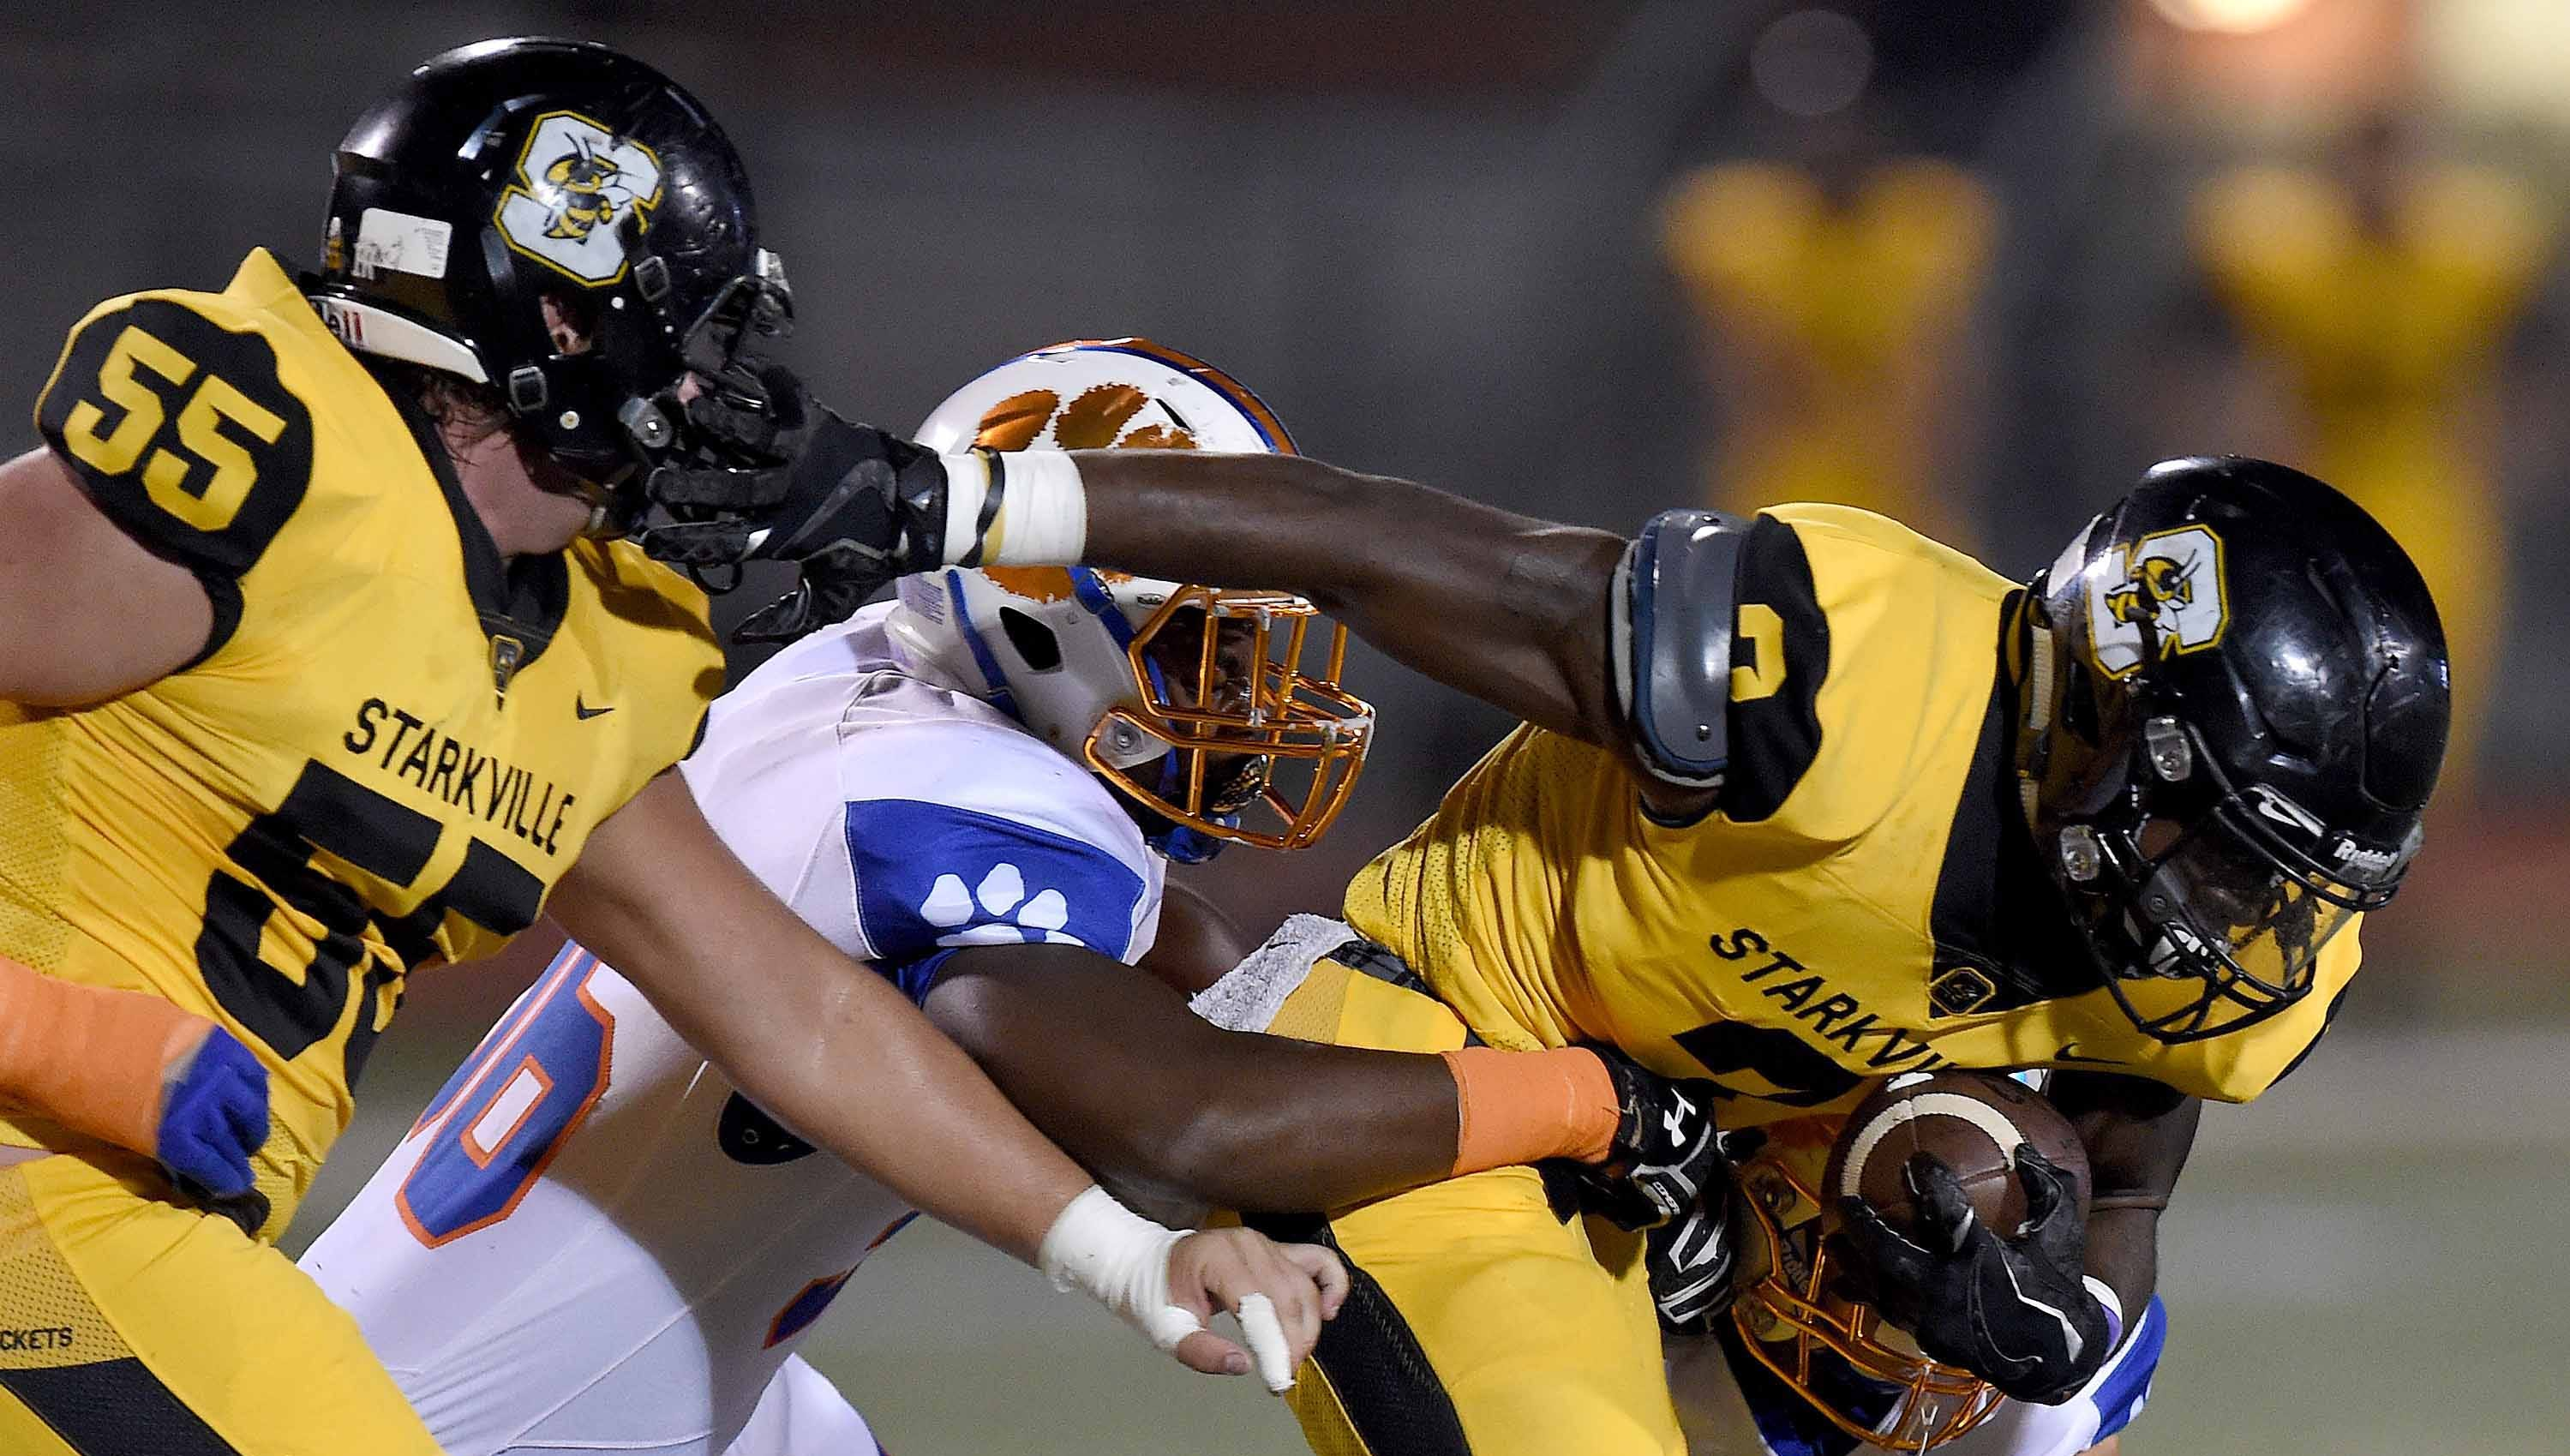 Starkville holds on to beat Madison Central in top-10 clash